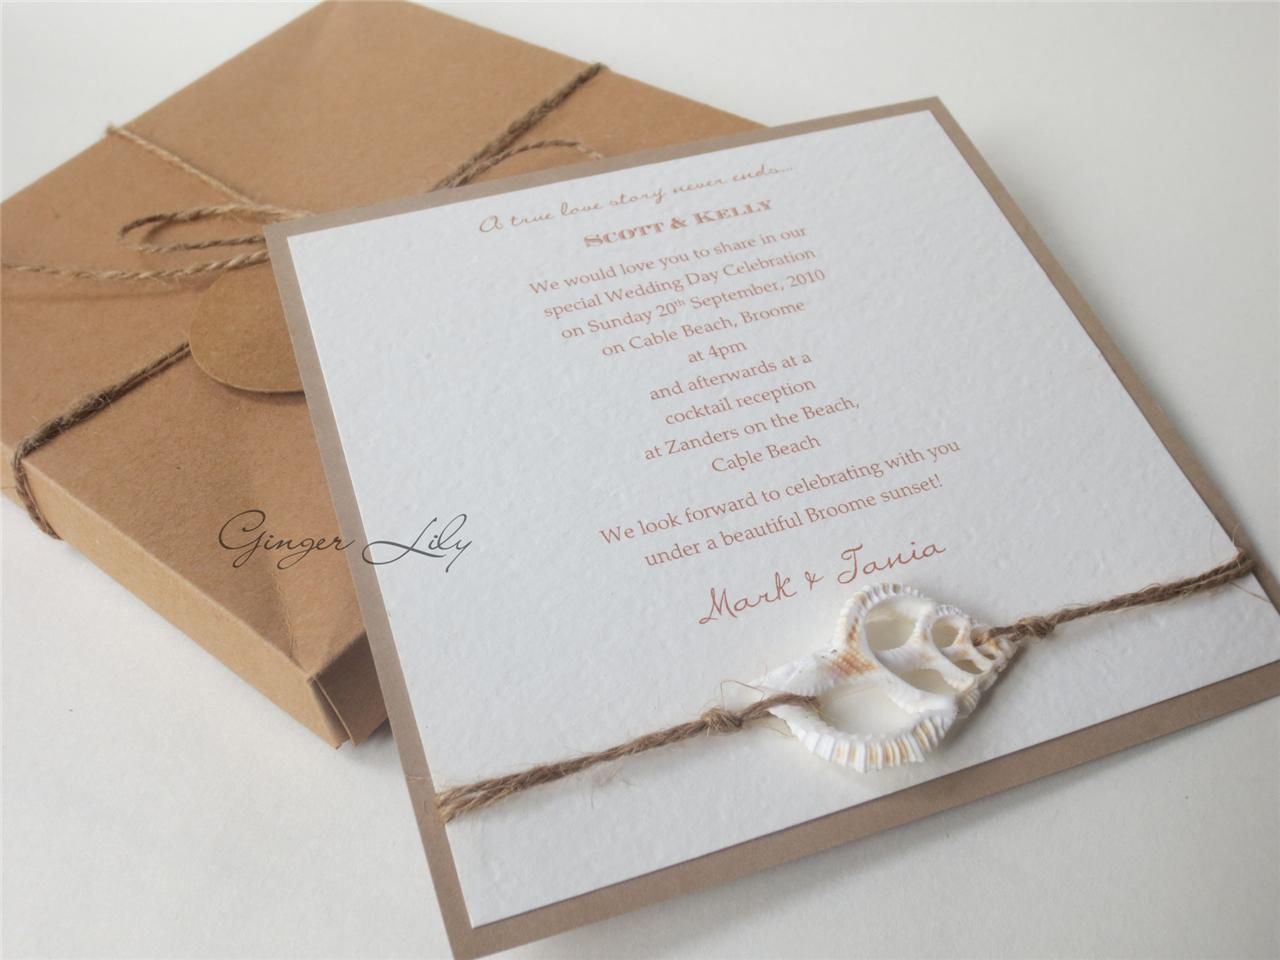 40 diy beach wedding ideas perfect for a destination celebration simple invites diy beach wedding invitations solutioingenieria Image collections